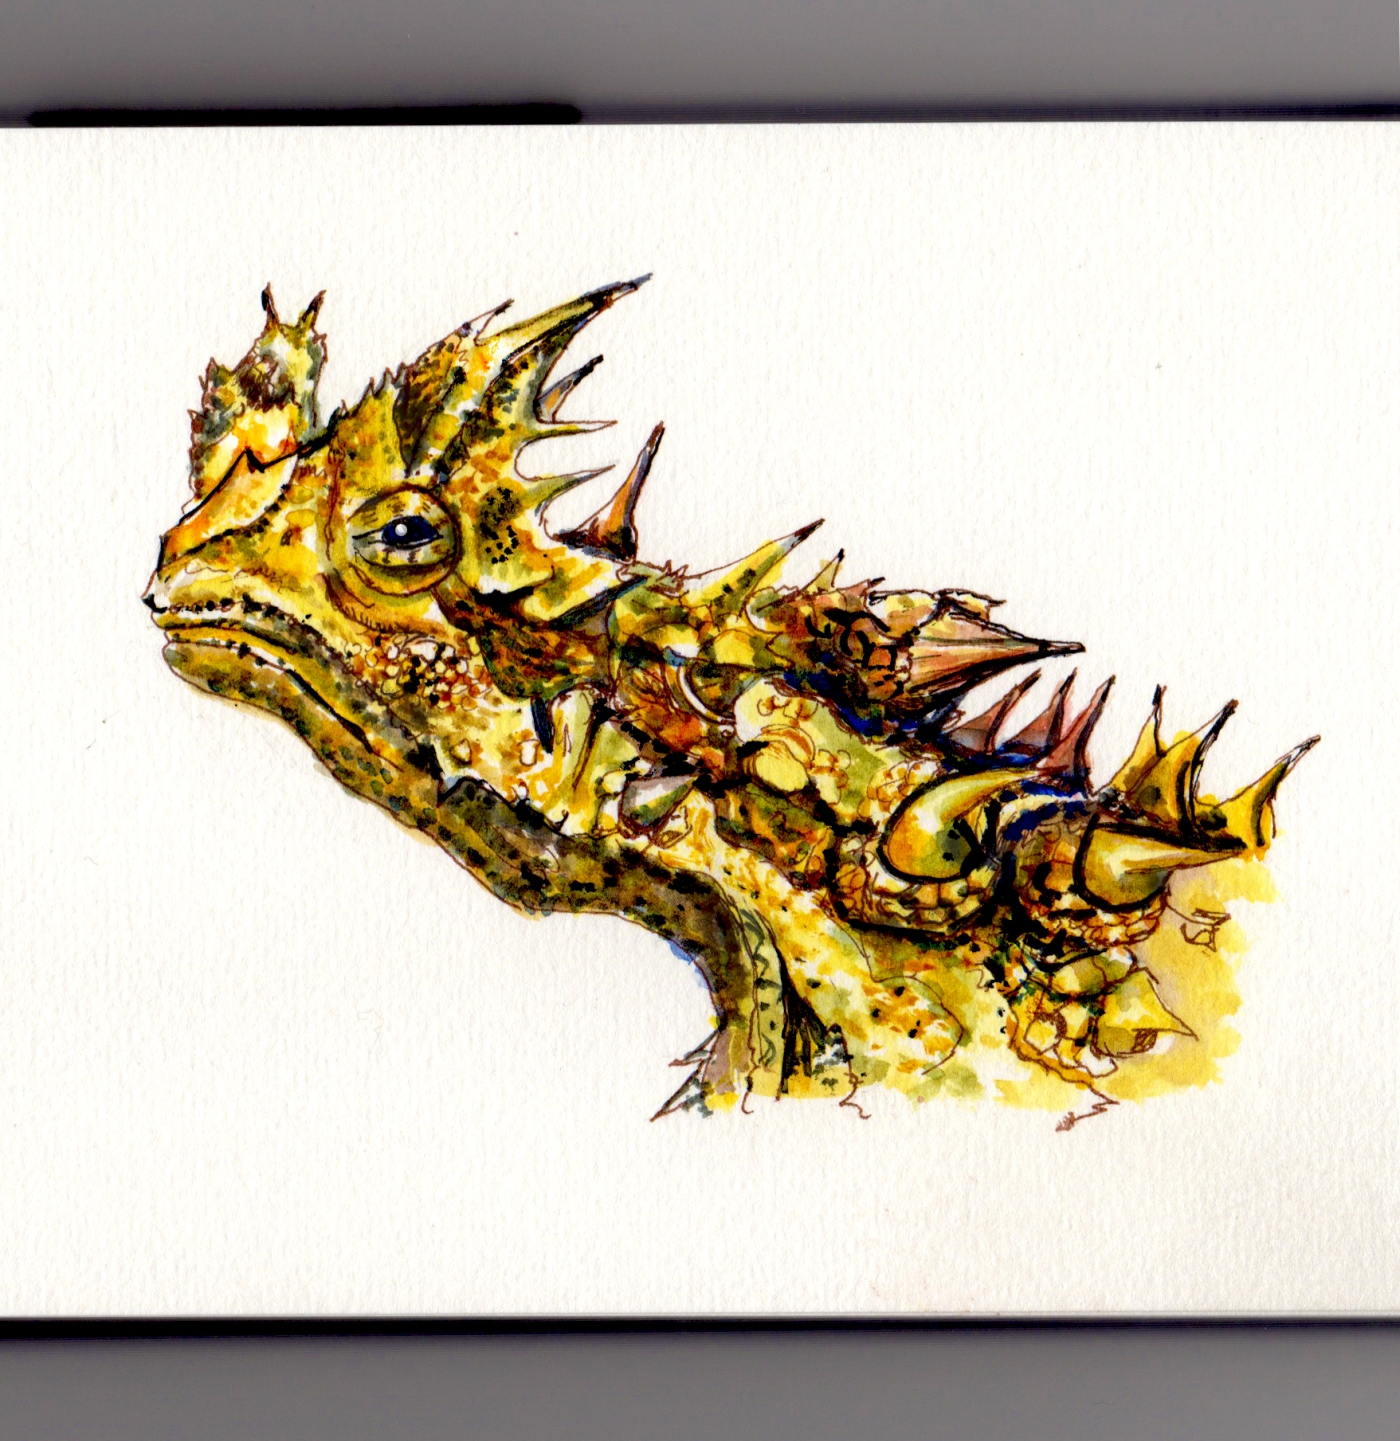 Thorny Devil Doodlewash - Thorny dragon, mountain devil, thorny lizard watercolor painting and sketch in australia